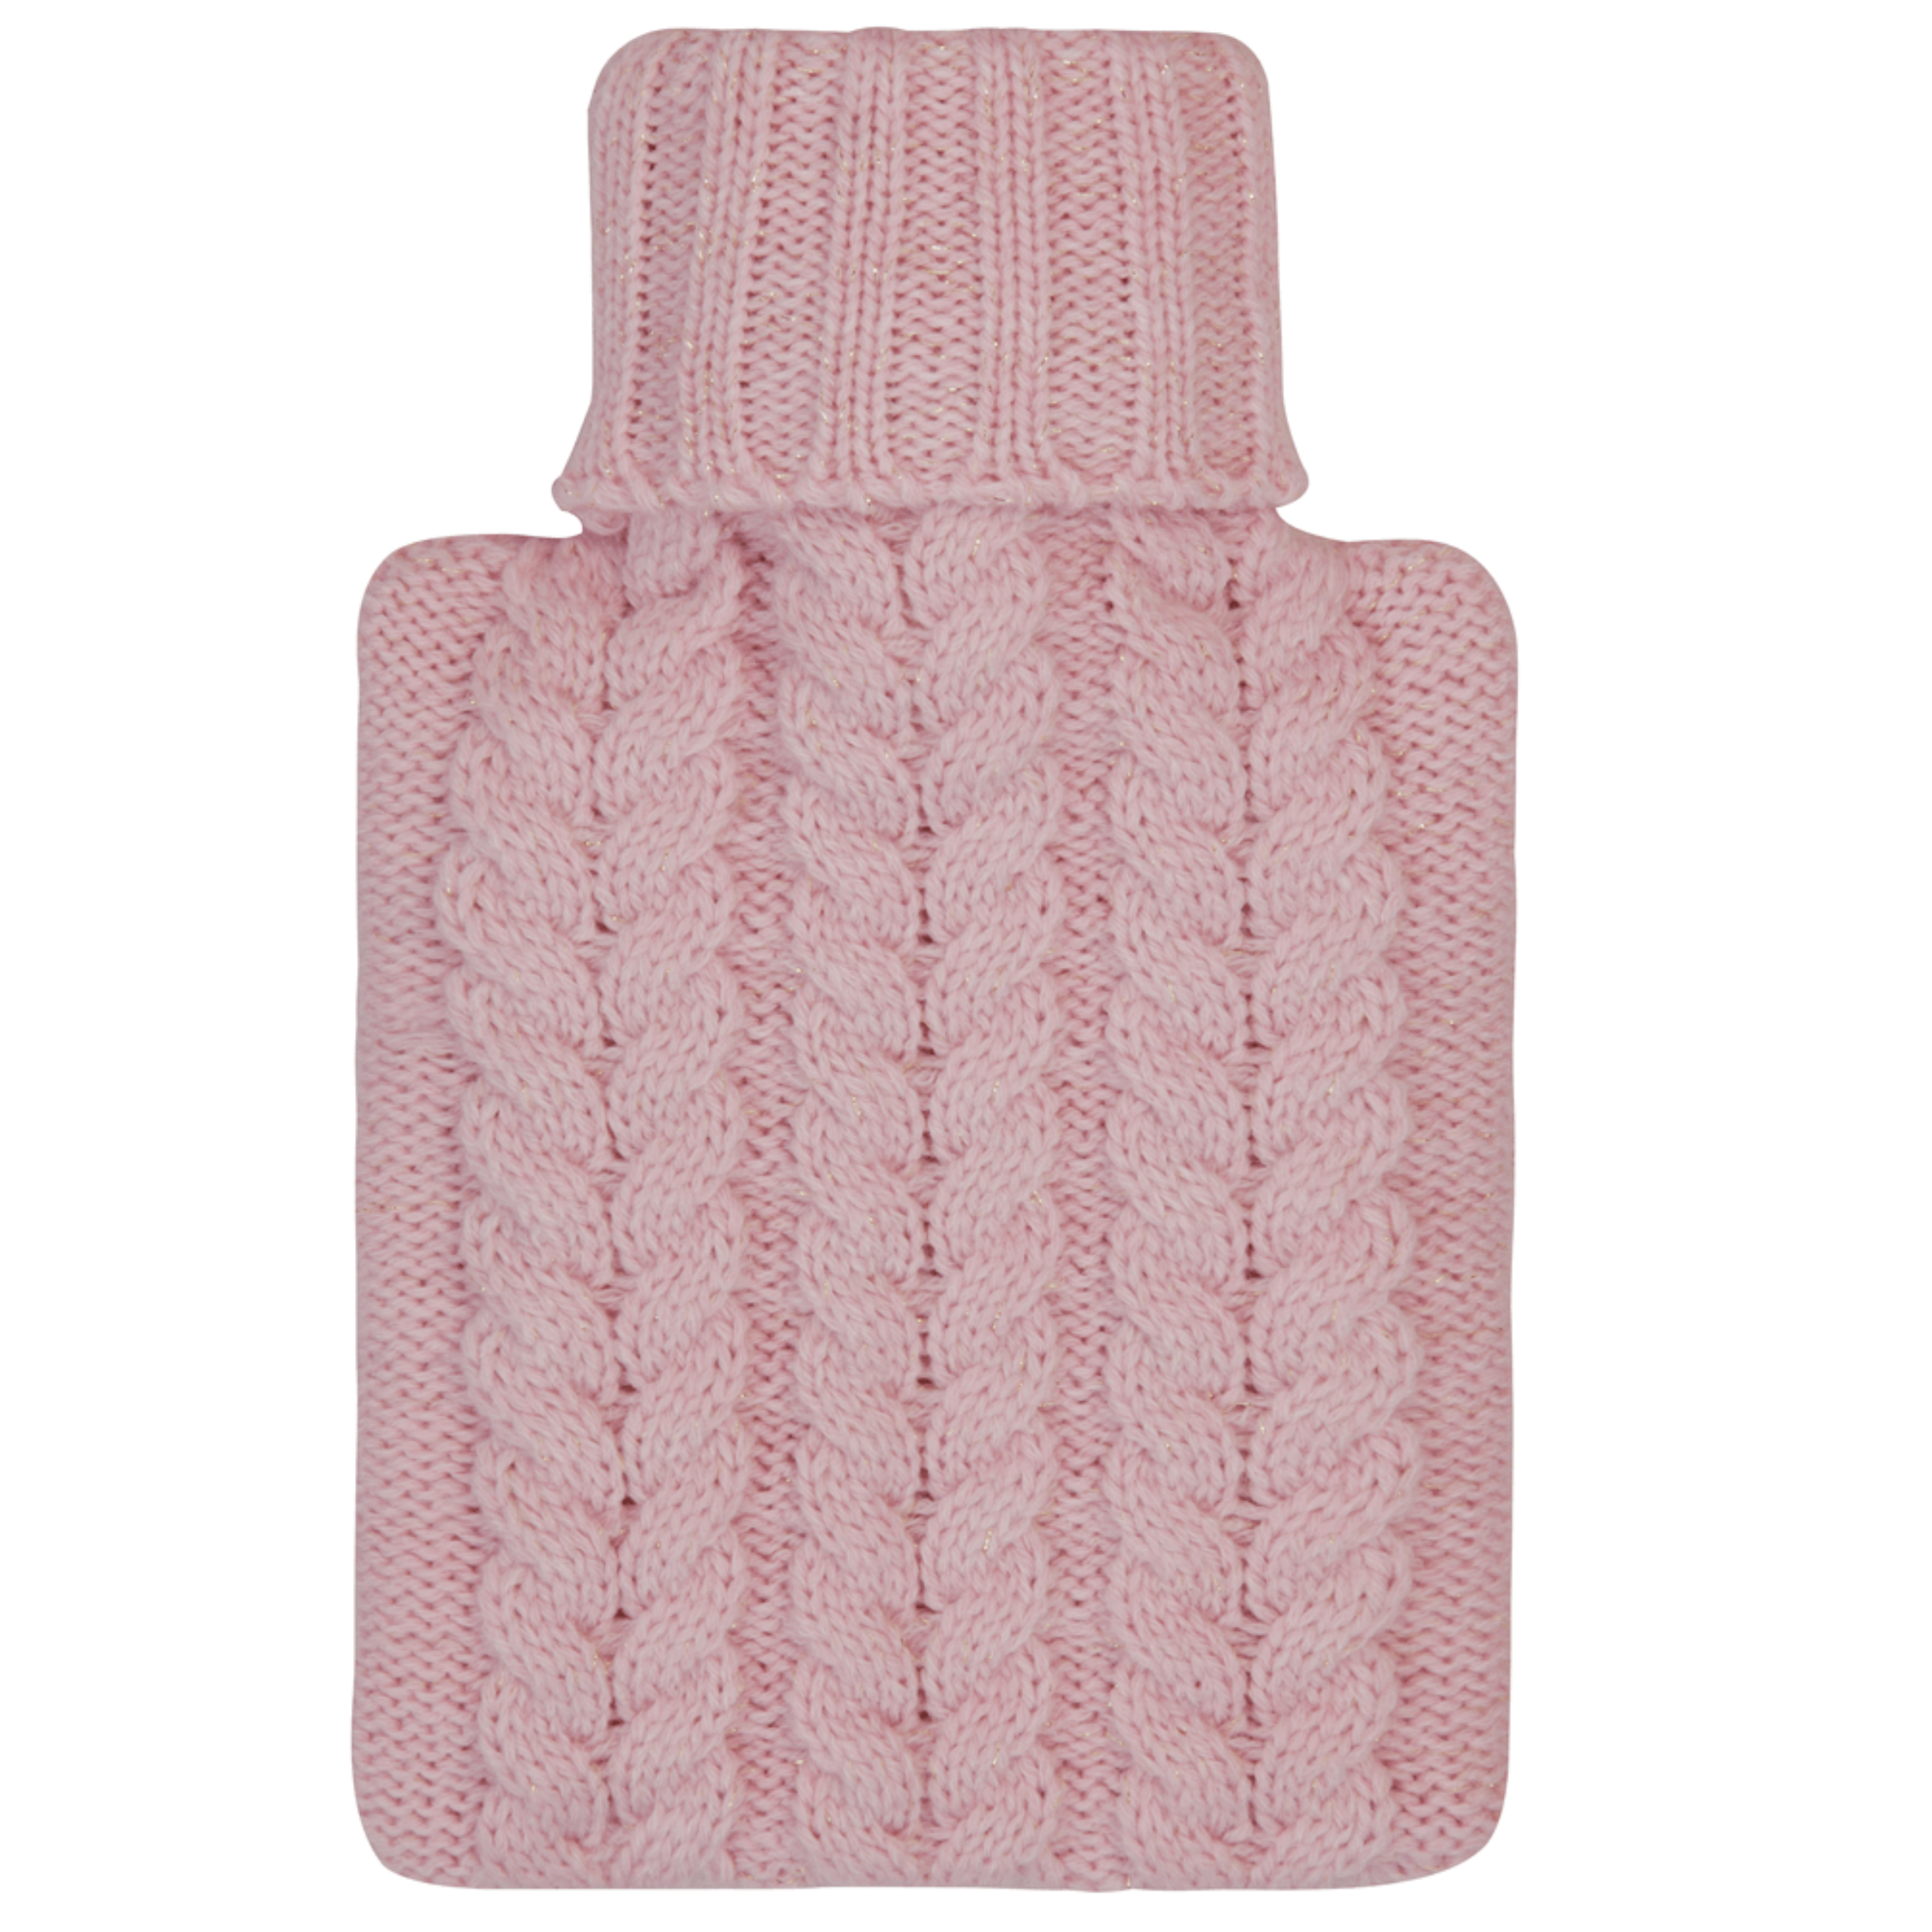 c5116f5512e7 Aroma Home Mini Knitted Hot Water Bottle   Cosy Slippers Gift Set - Pink  Thumbnail 3